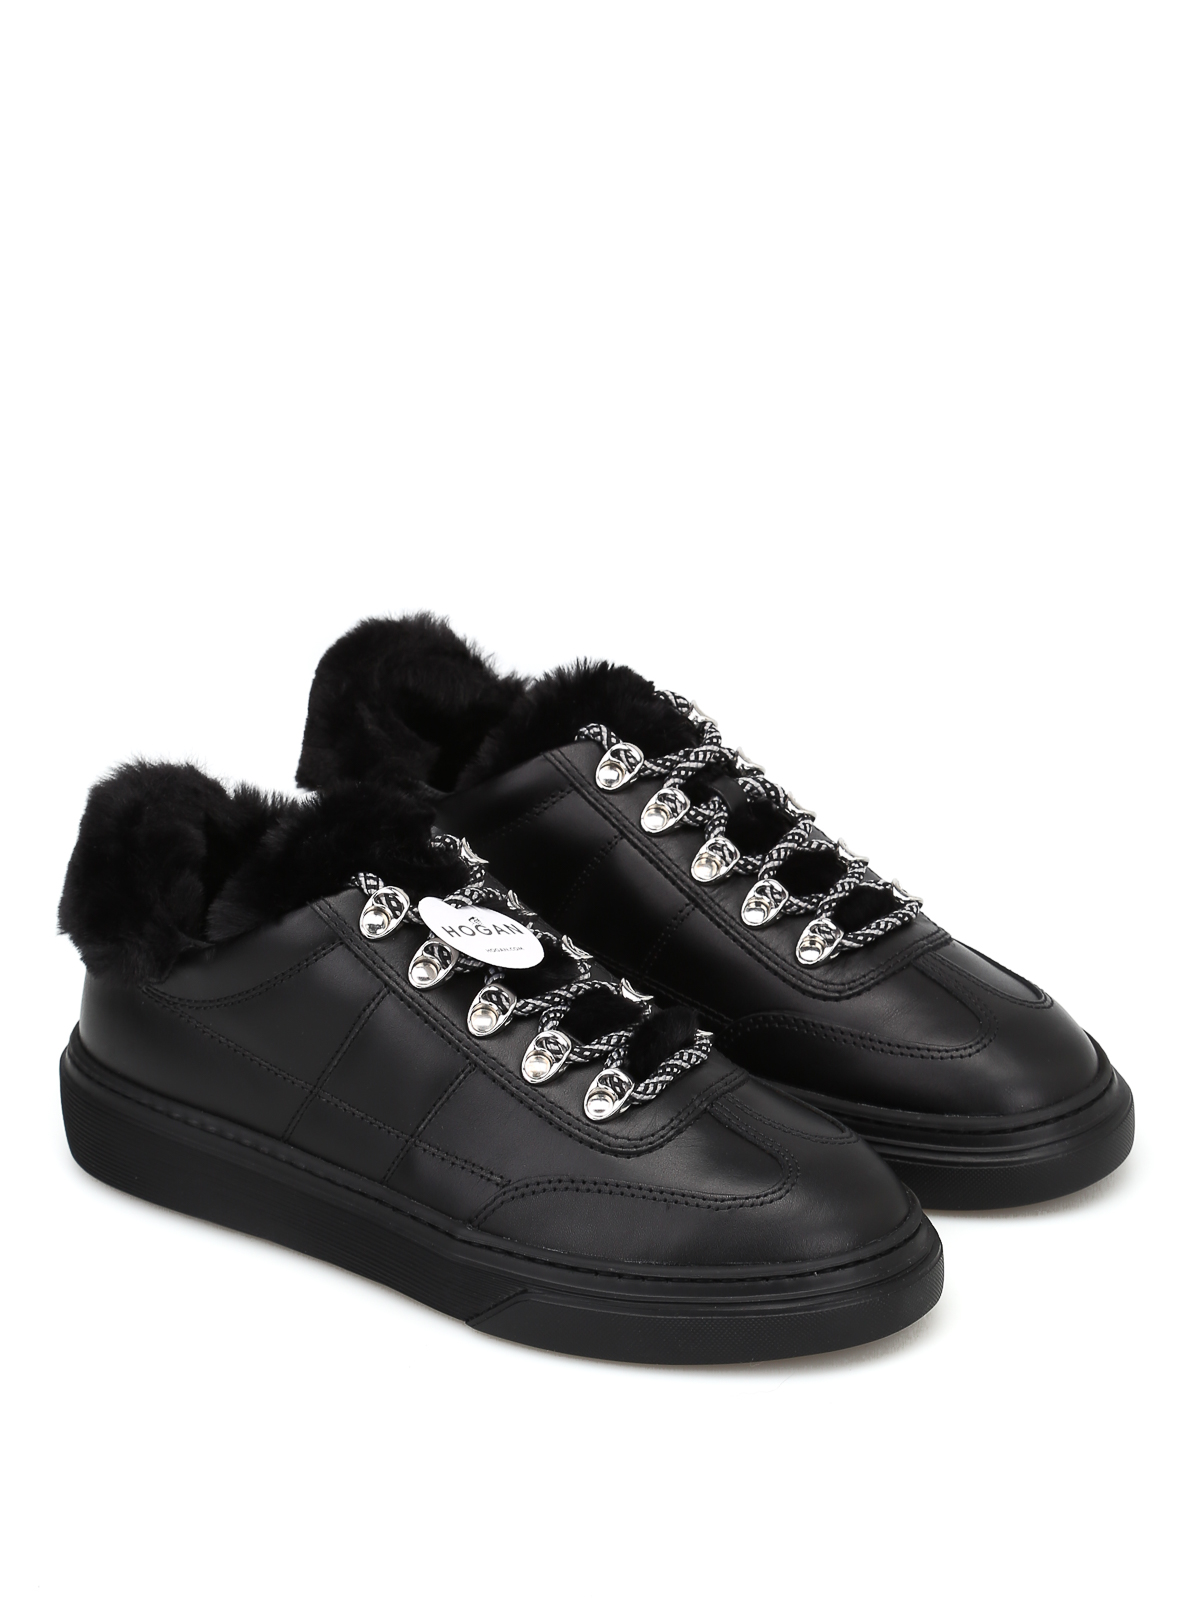 26bb648102d5 HOGAN  trainers online - Black sheep fur detail leather sneakers